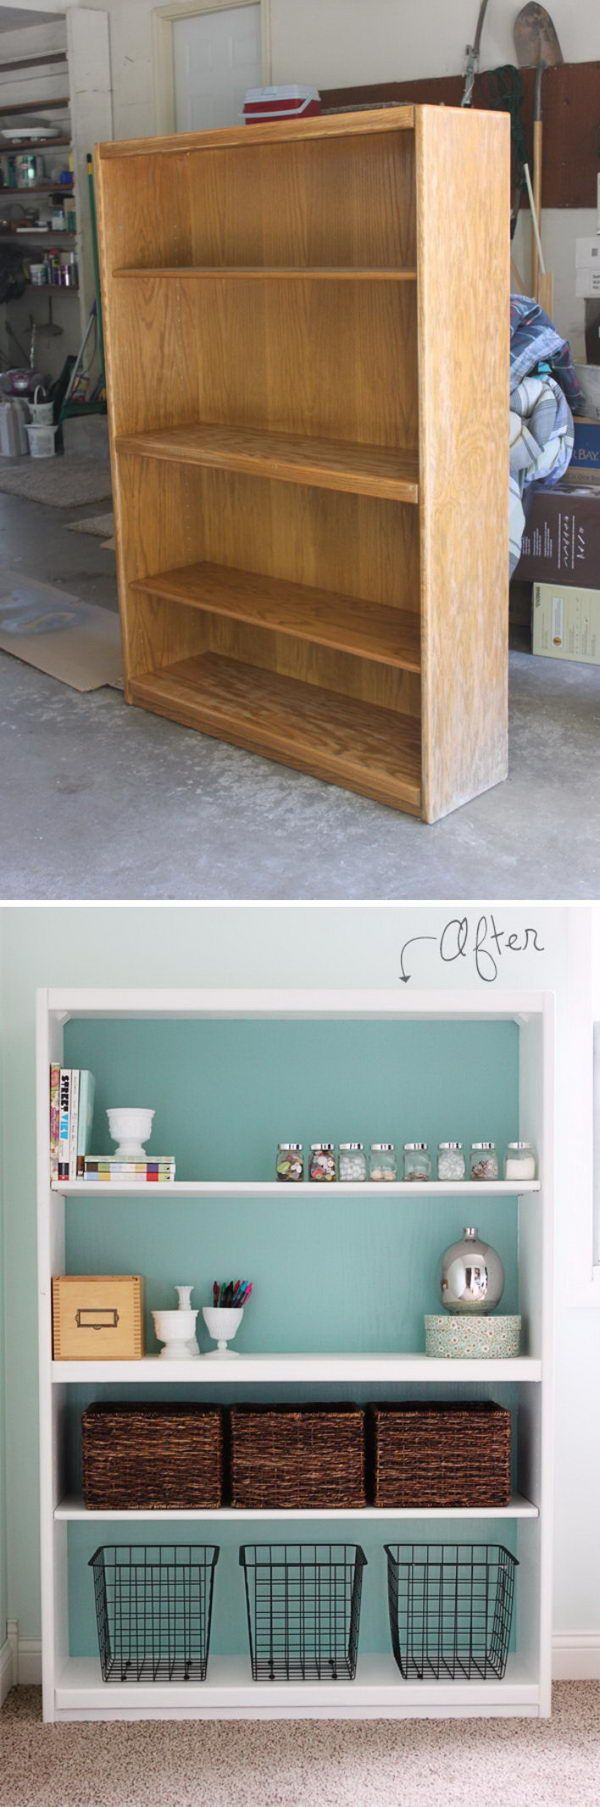 Bookcase Makeover With Before and After.